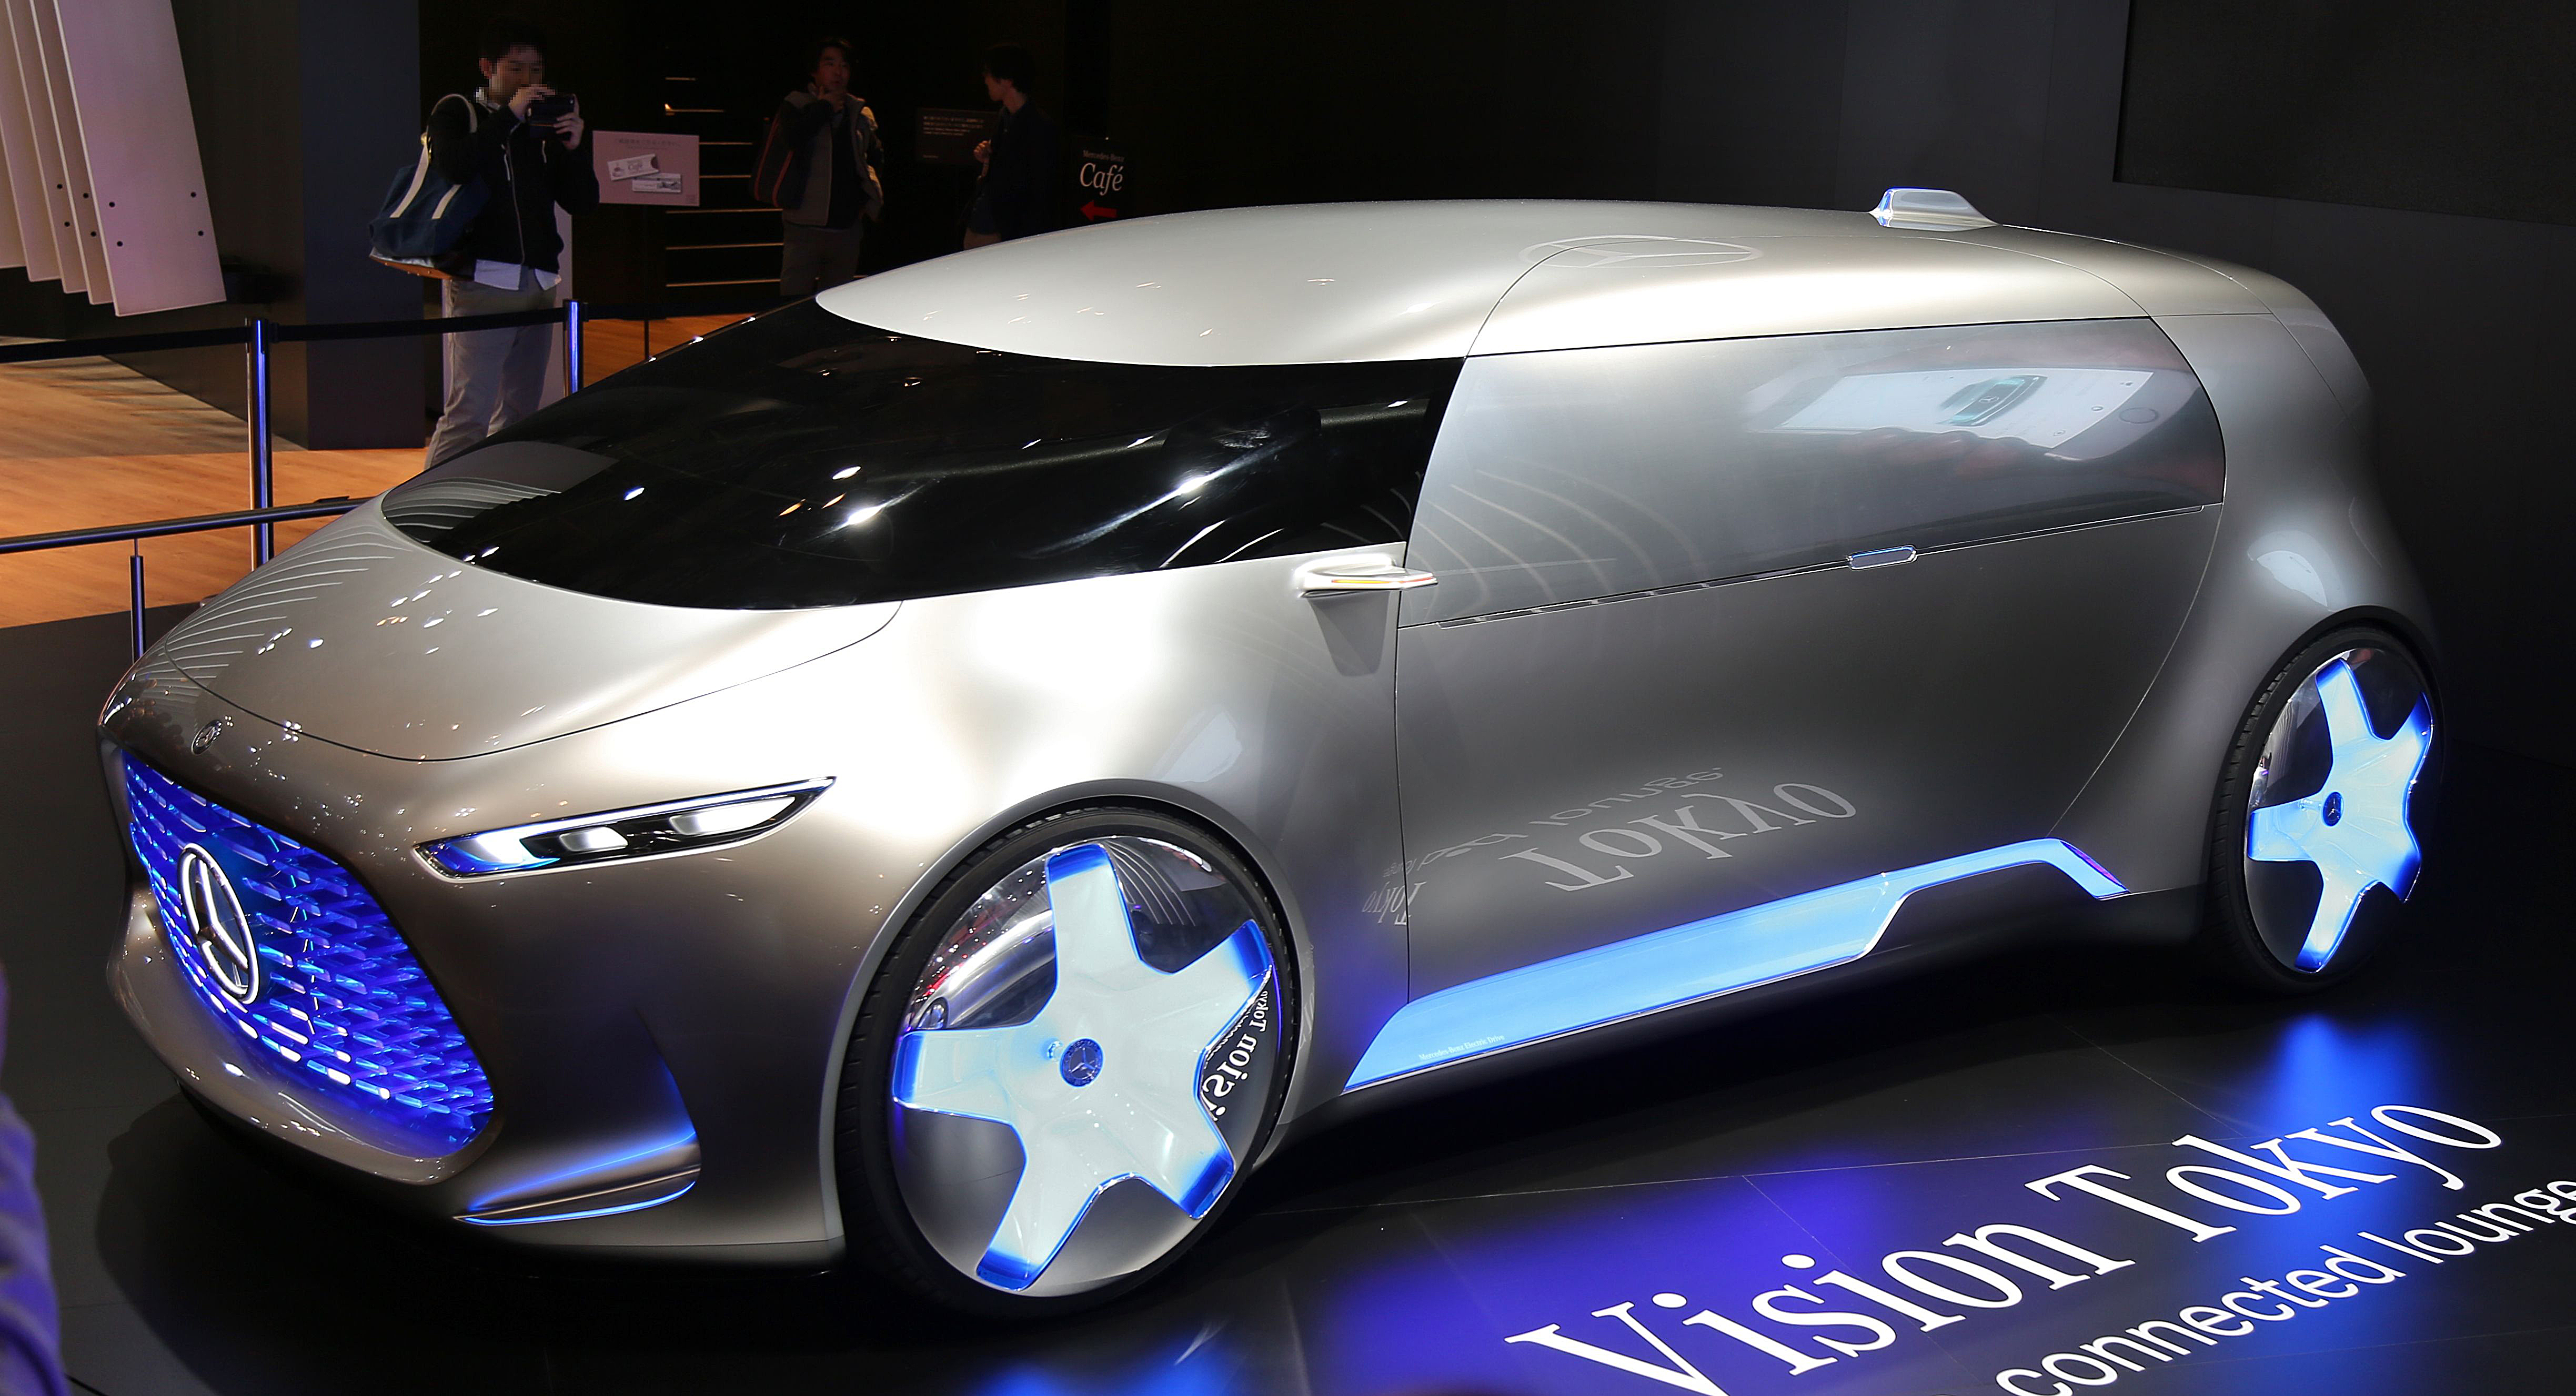 https://upload.wikimedia.org/wikipedia/commons/0/0a/Mercedes-Benz_Vision_Tokyo.jpg